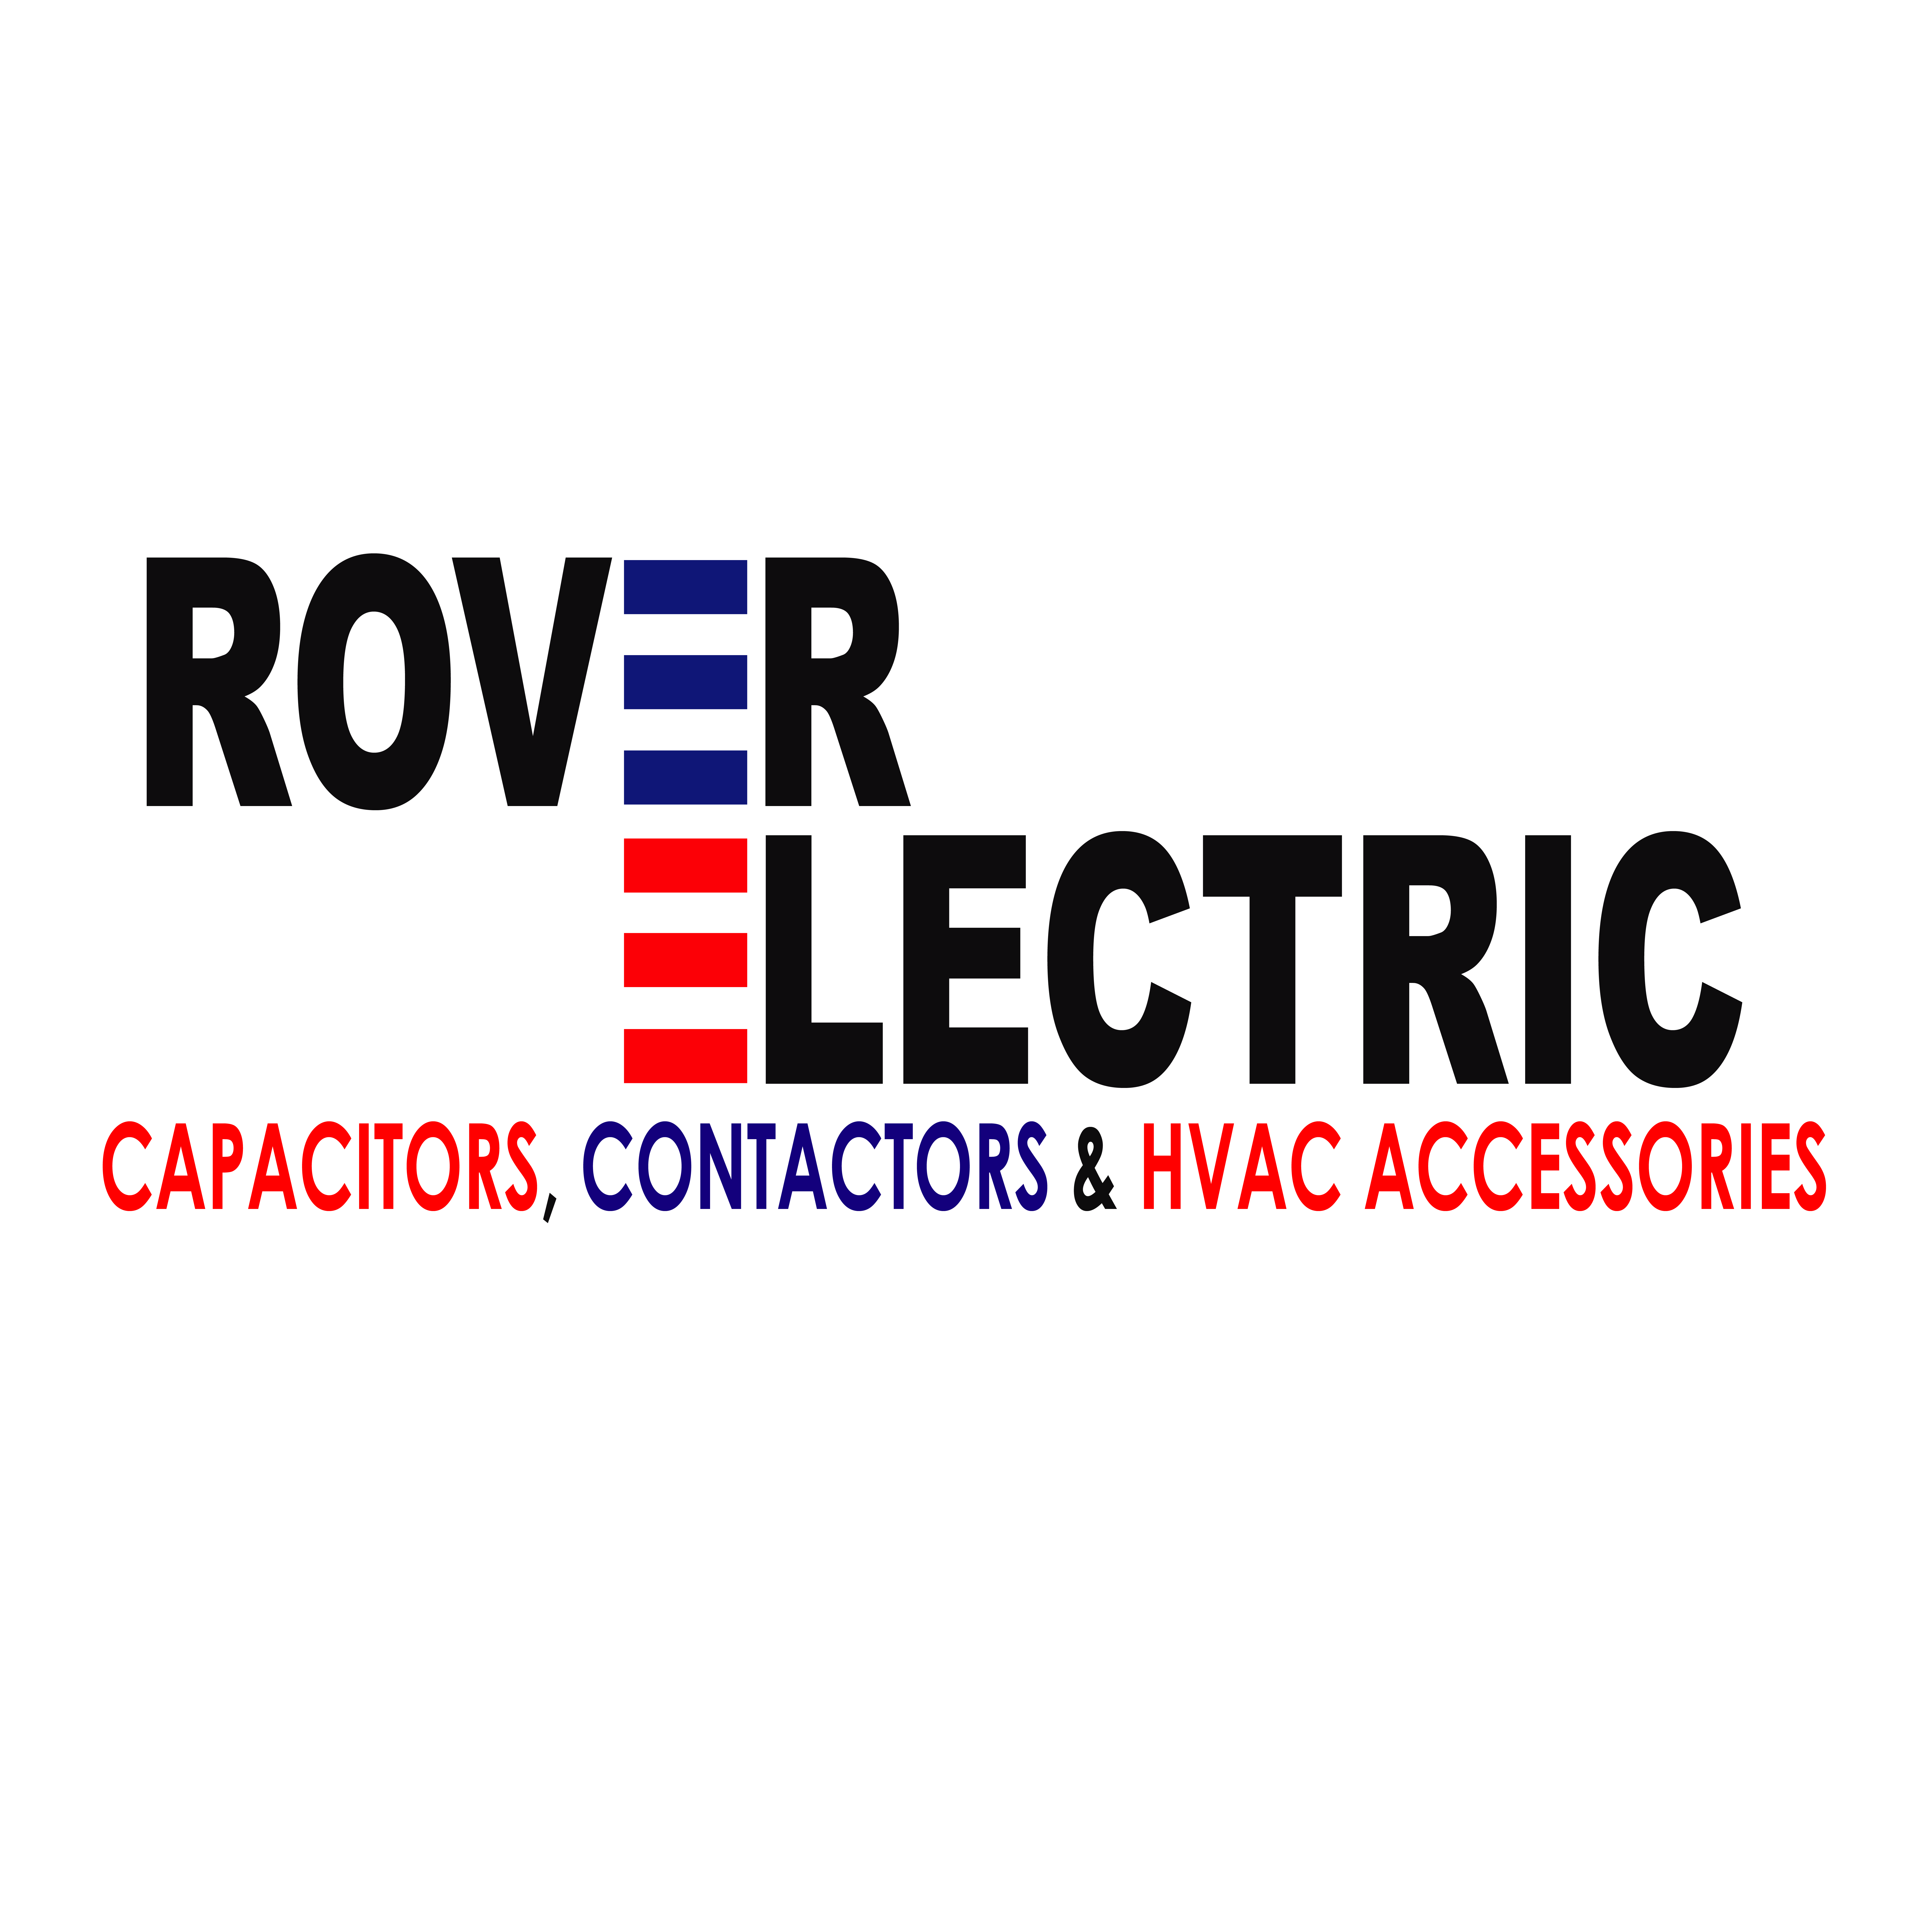 Rover Electric